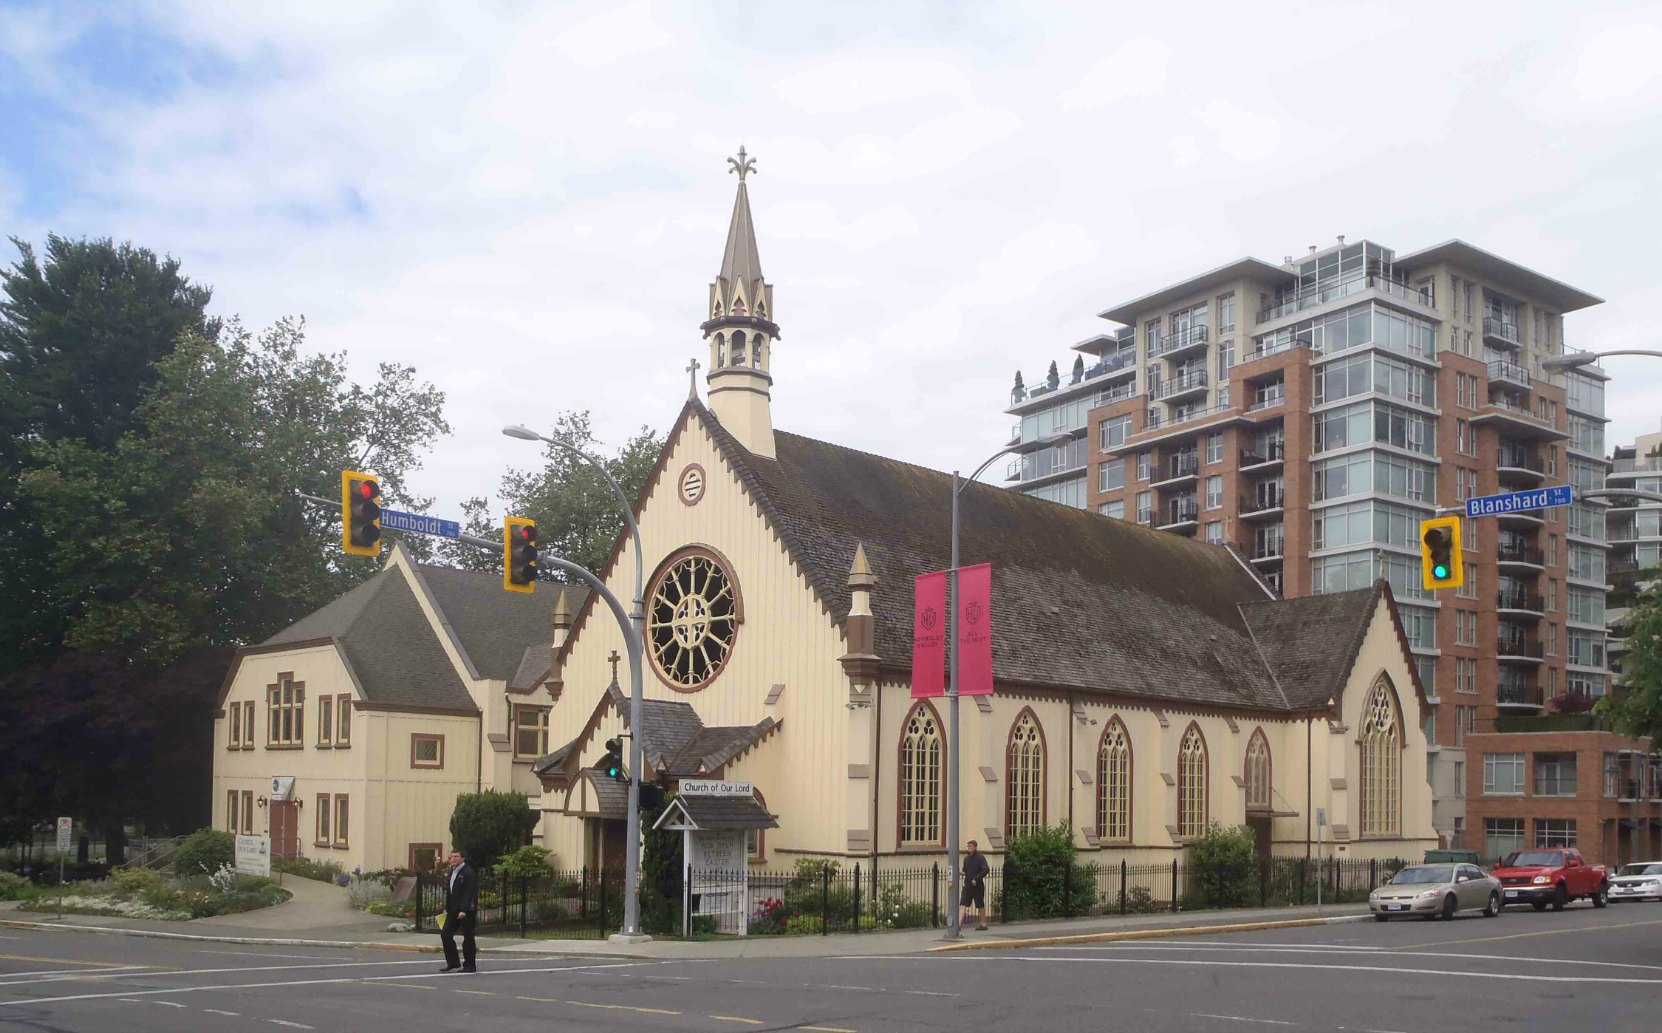 The Church of Our Lord, 626 Blanshard Street, Vuctoria, B.C. Built in 1876 by architect John Teague for Rev. Edward Cridge and the Reformed Episcopal Church.